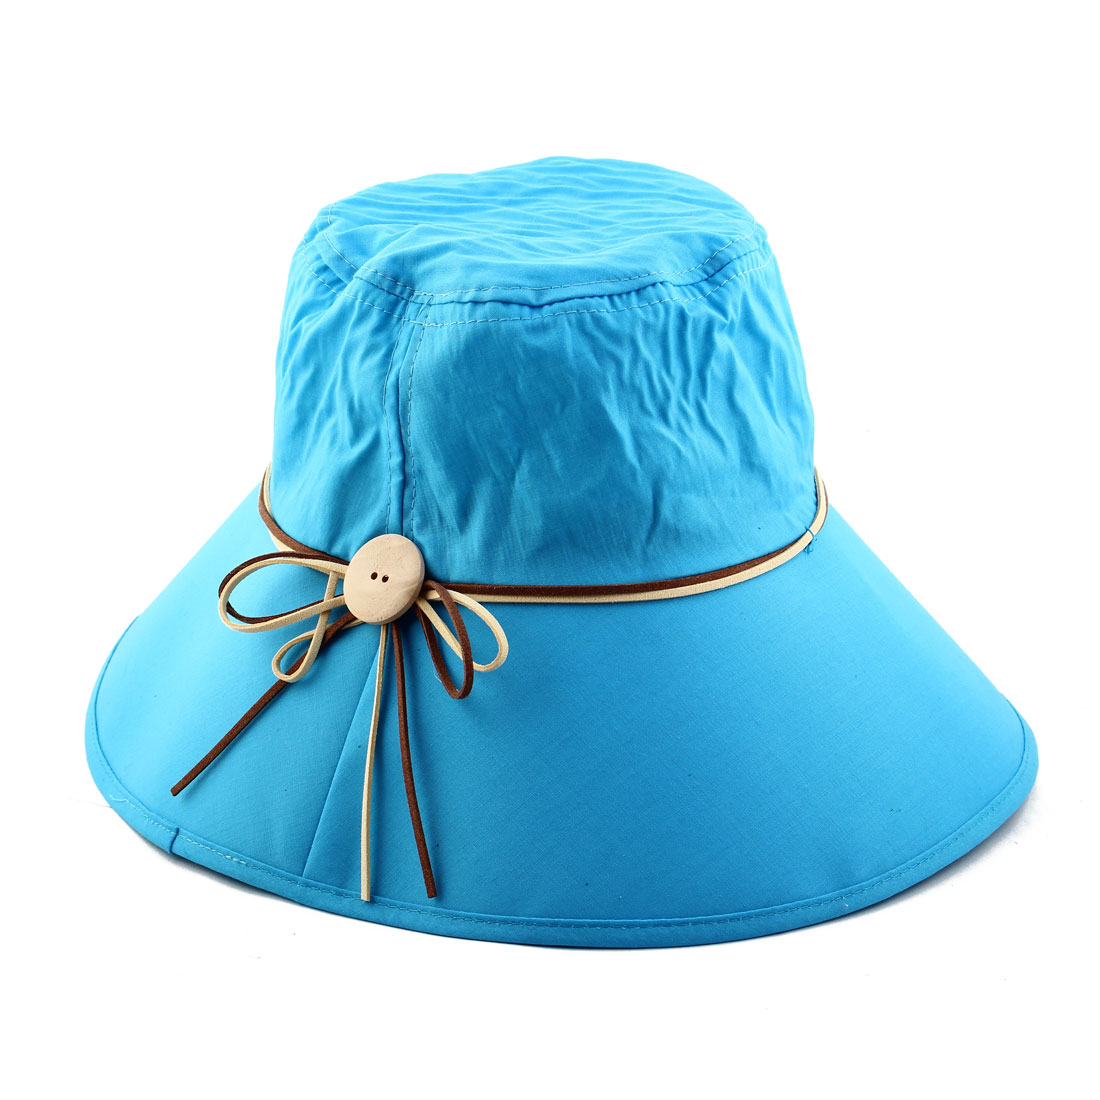 Woman Bowknot Wooden Buckle Decor Adjustable Wide Brim Summer Beach Cap Sun Hat Sky Blue